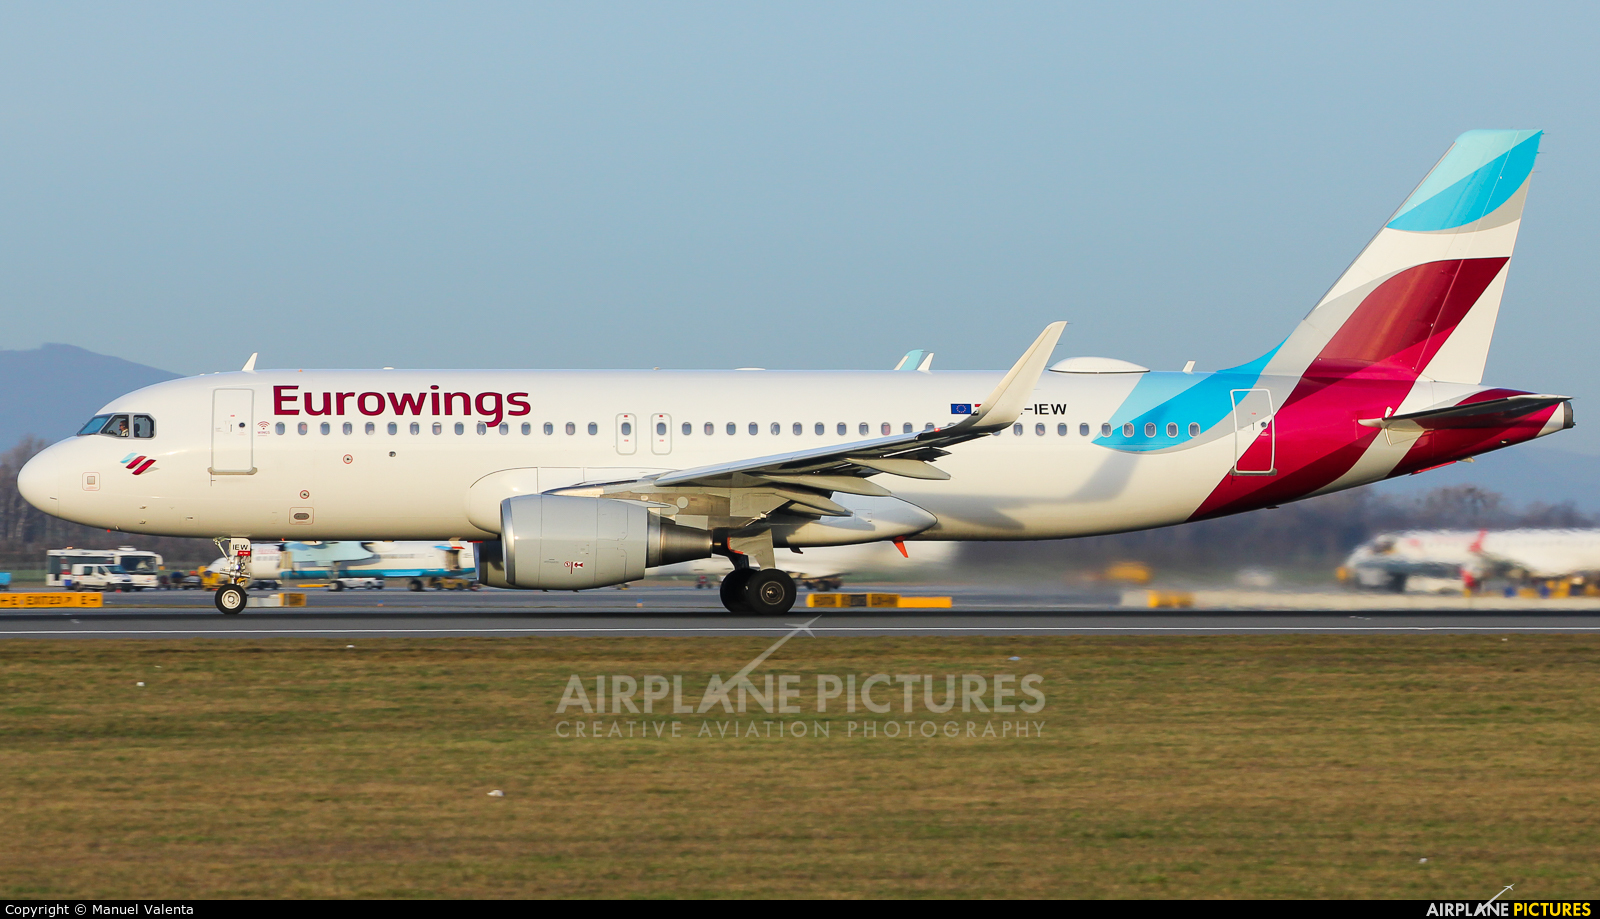 Eurowings Europe OE-IEW aircraft at Vienna - Schwechat